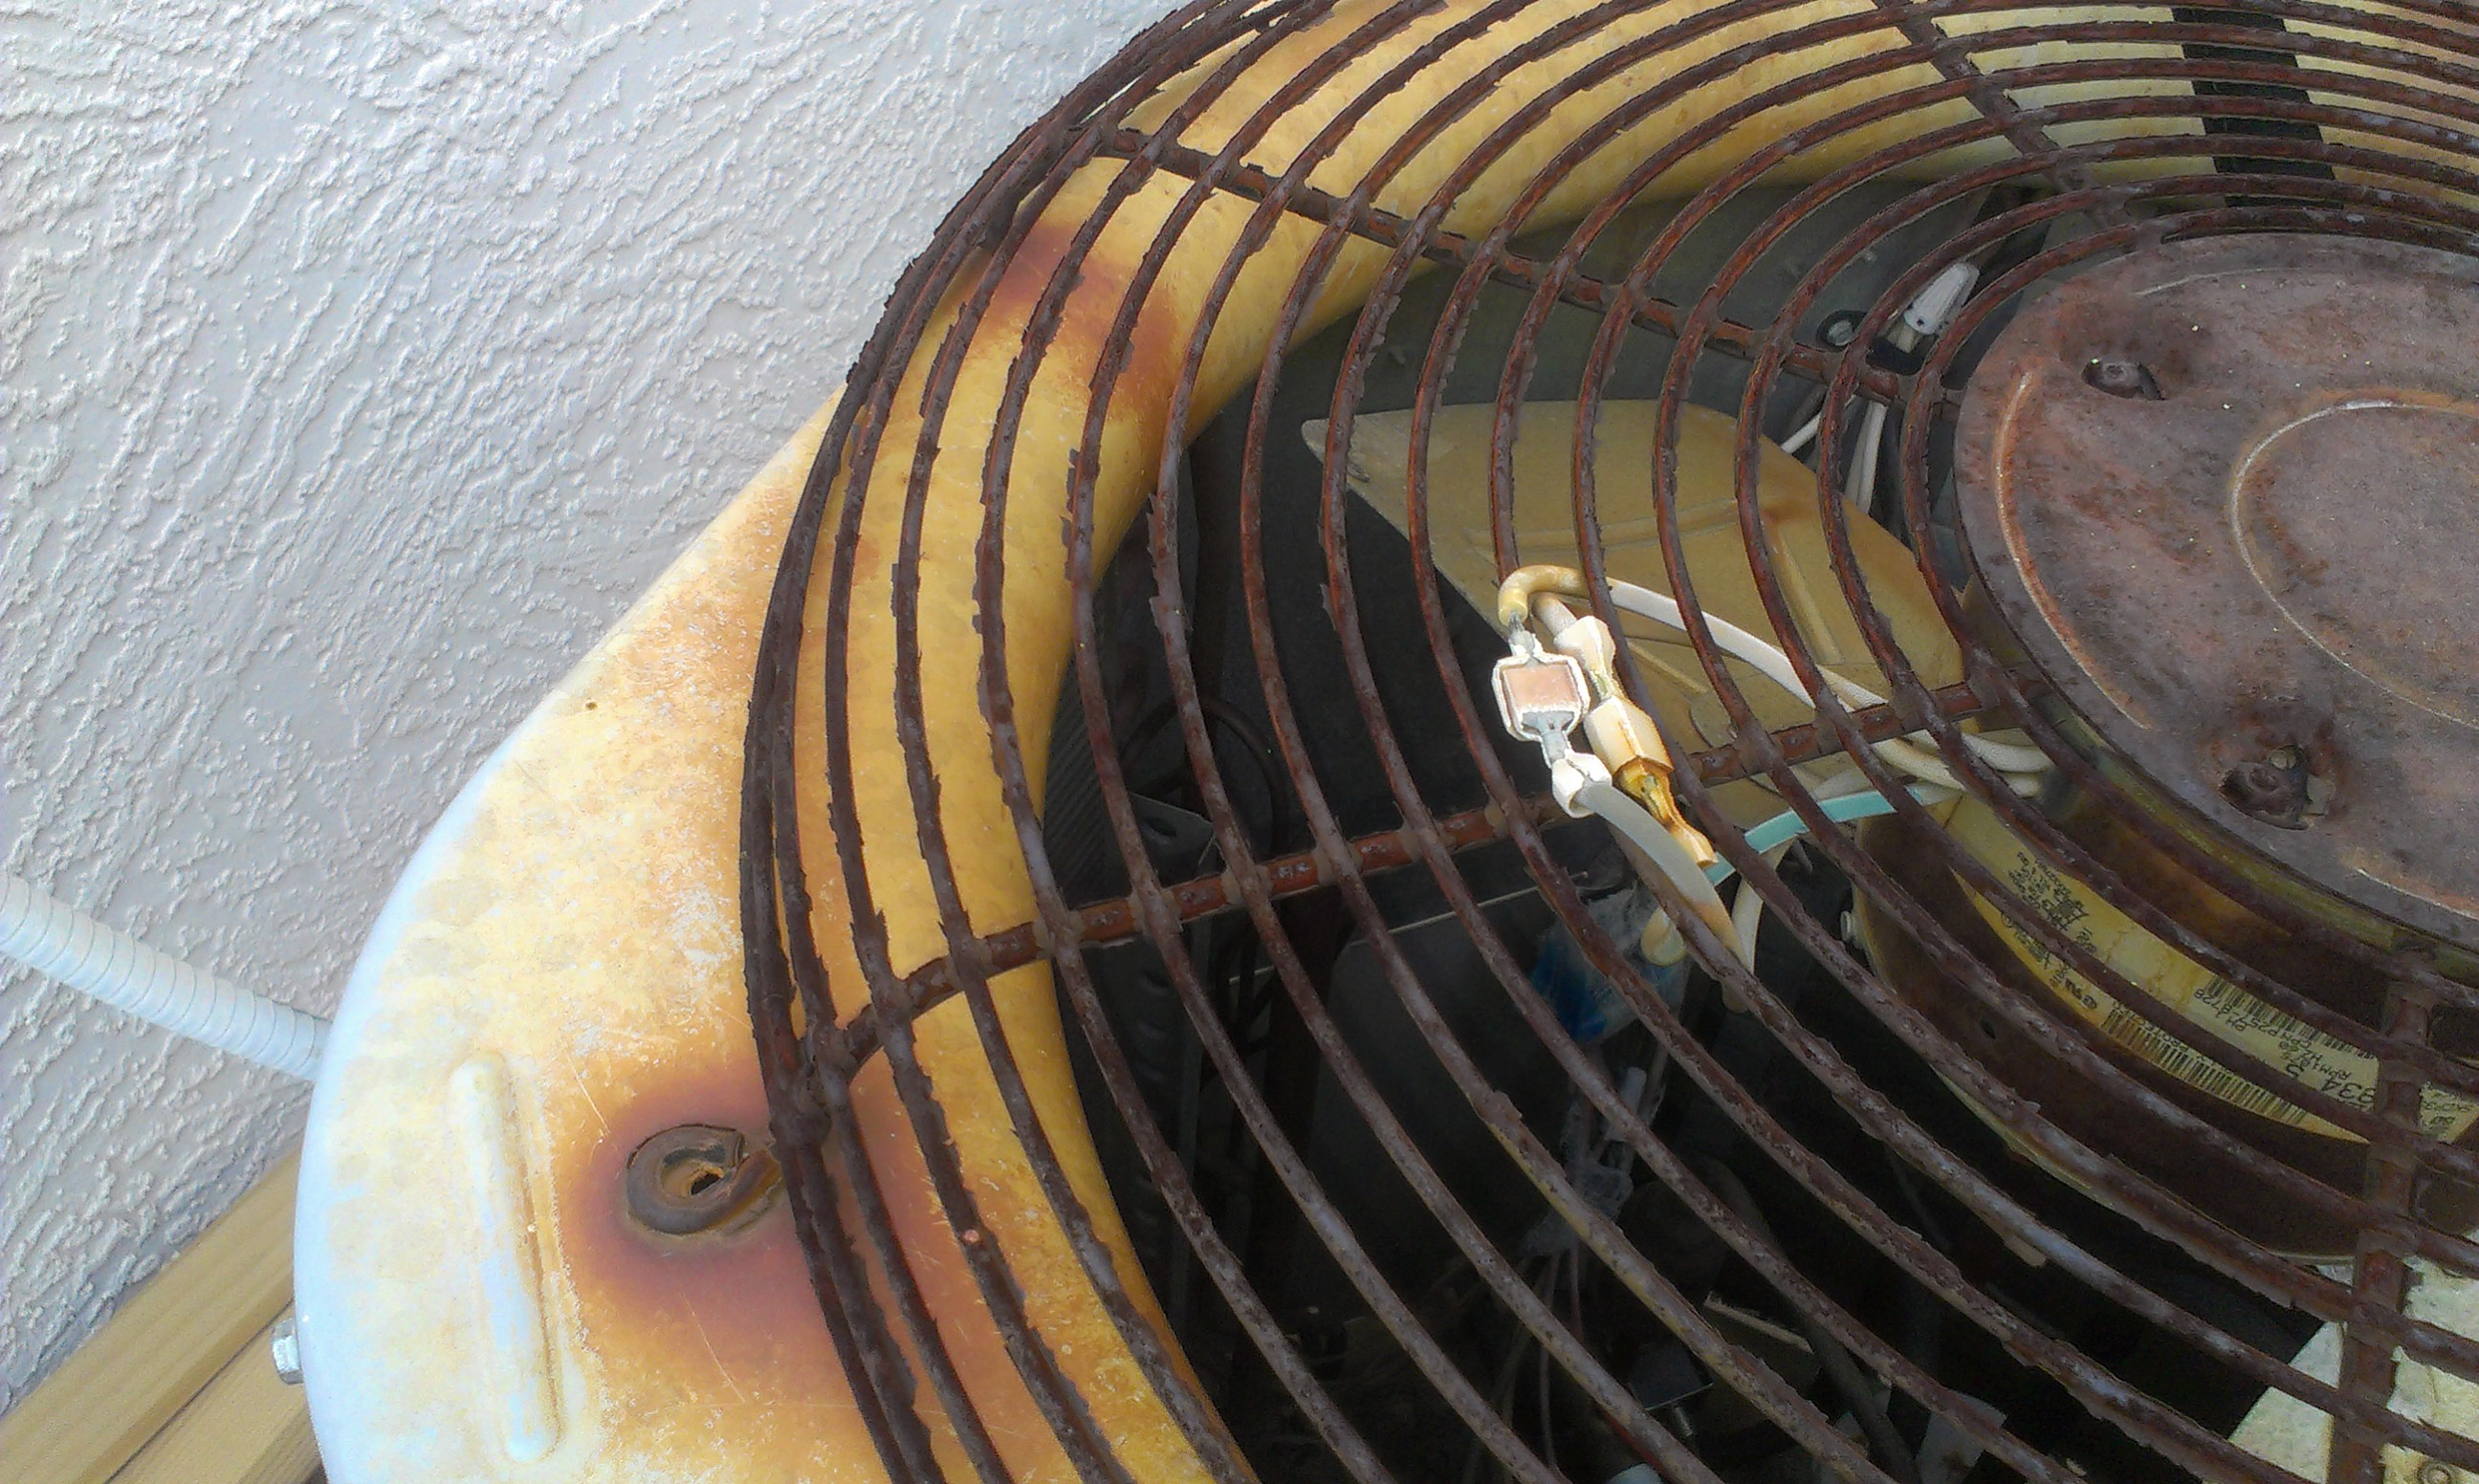 condenser fan motor with the reverse leads sticking out of the top of the fan grill